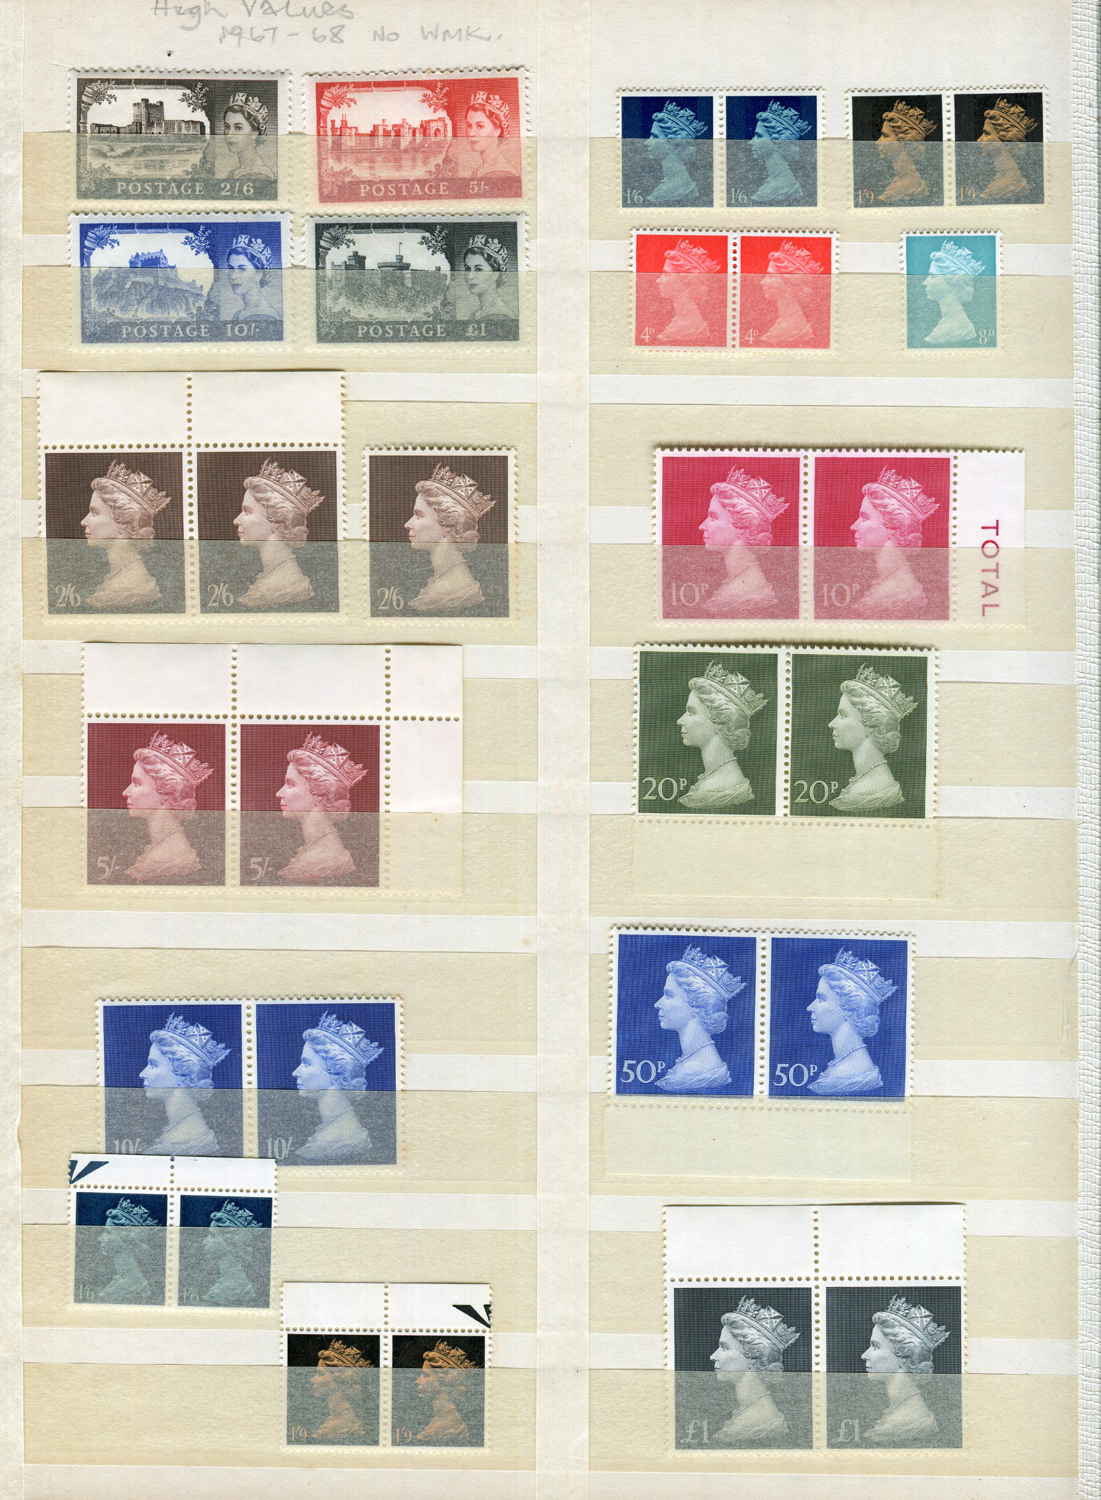 Lot 3052 - Two stock books containing Great Britain stamps, including Wildings unmounted mint sets from 1953